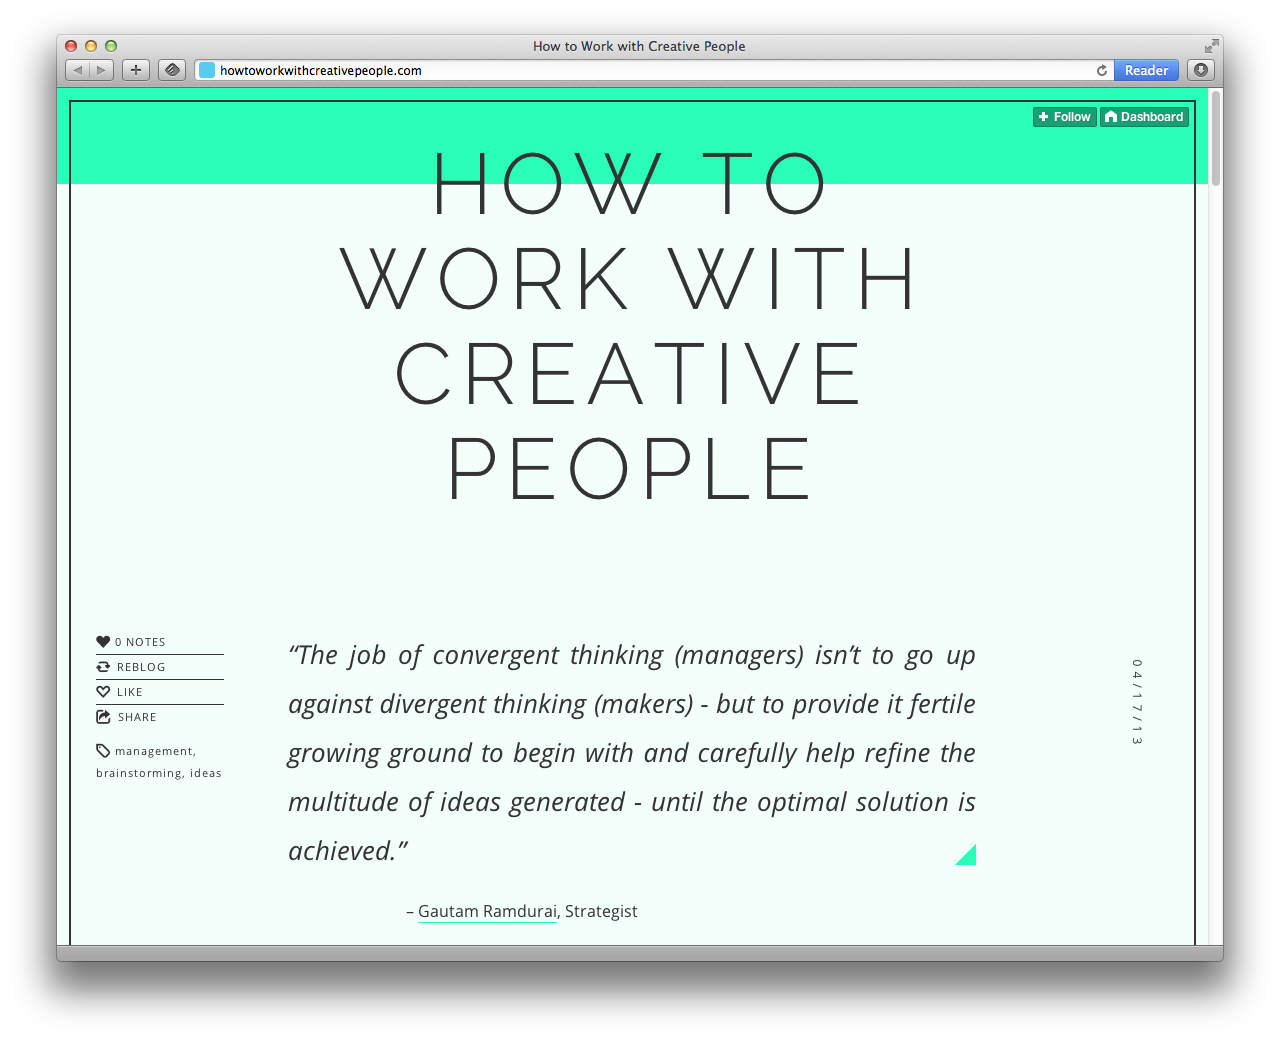 How To Work With Creative People